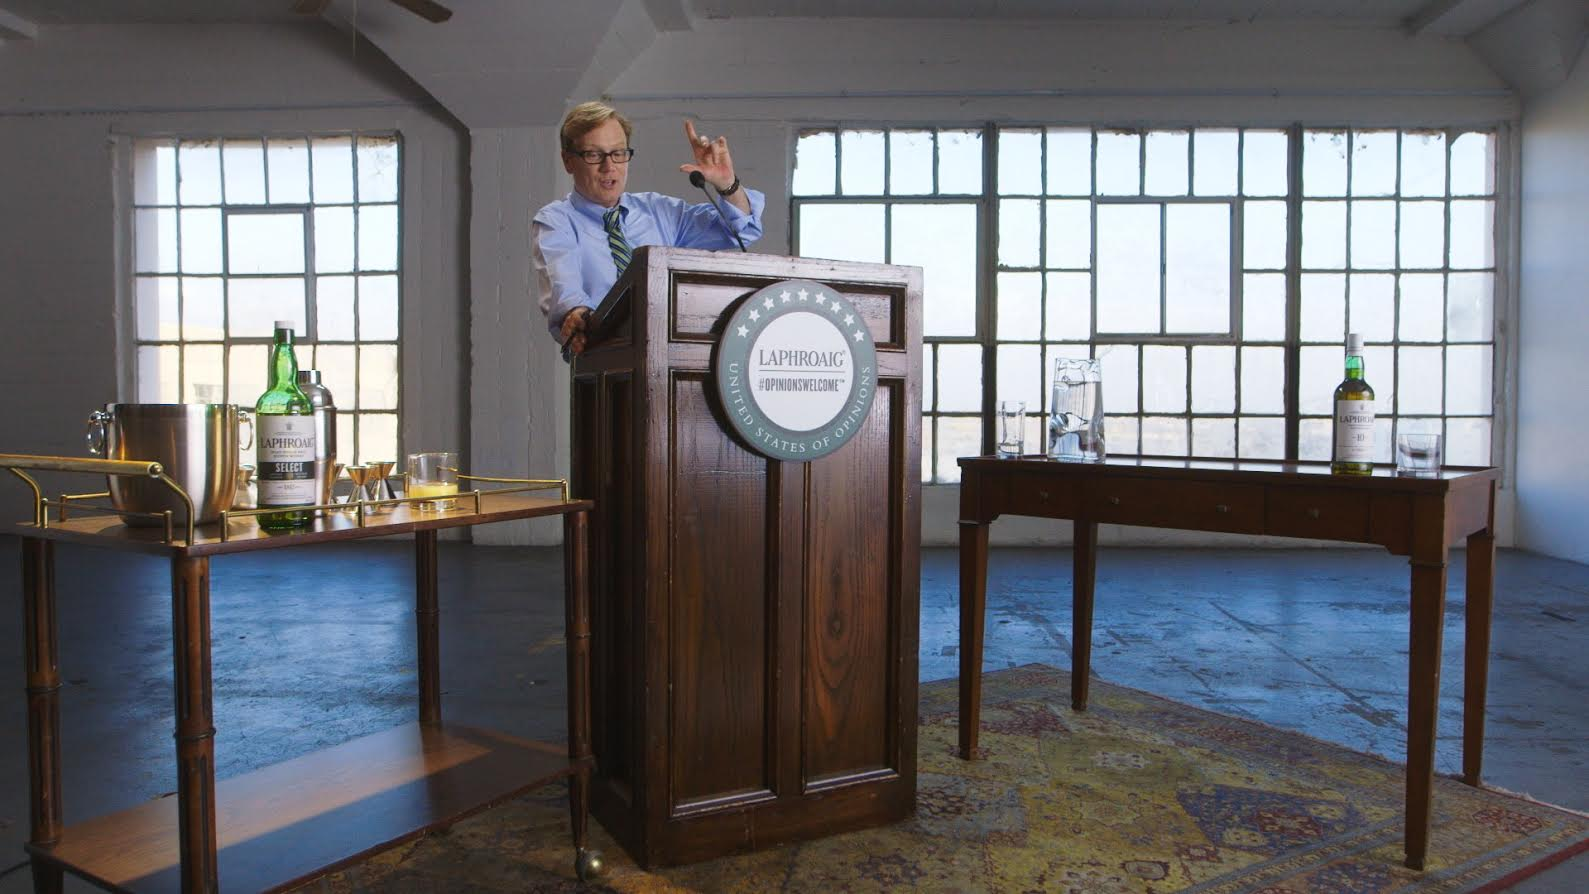 One Take, Long Take: Watch Andy Daly's 3.5 hour filibuster on scotch